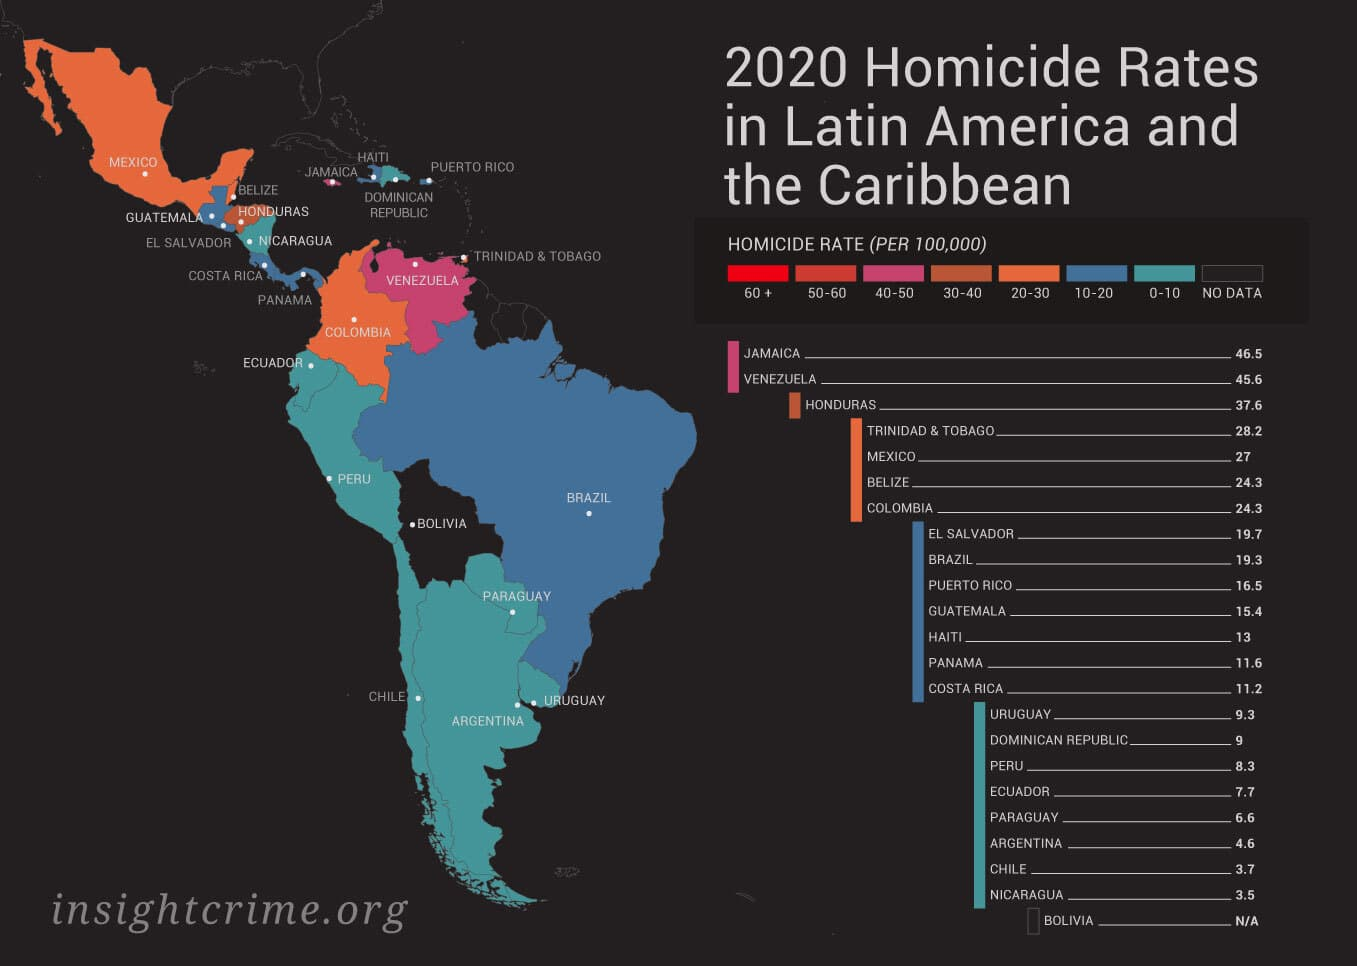 2020-Homicide-Rates-in-Latin-America-and-the-Caribbean_InSight-Crime_Map_Ene-2021-1.jpg